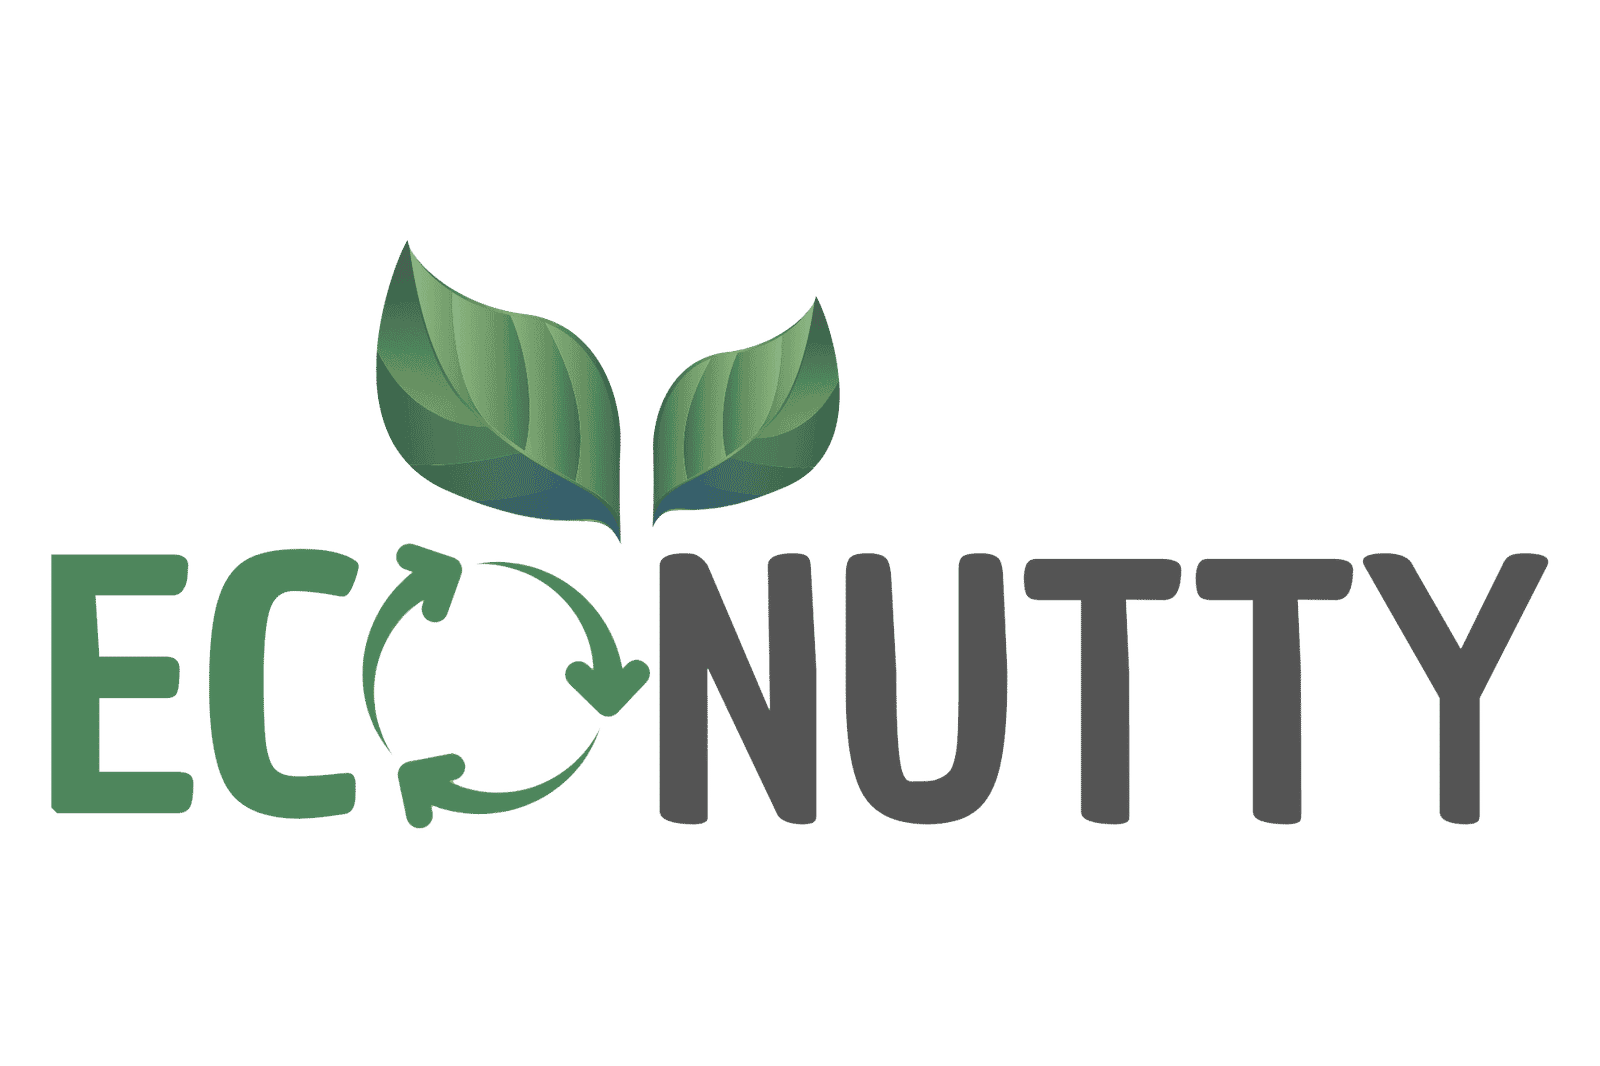 Eco Nutty (1)